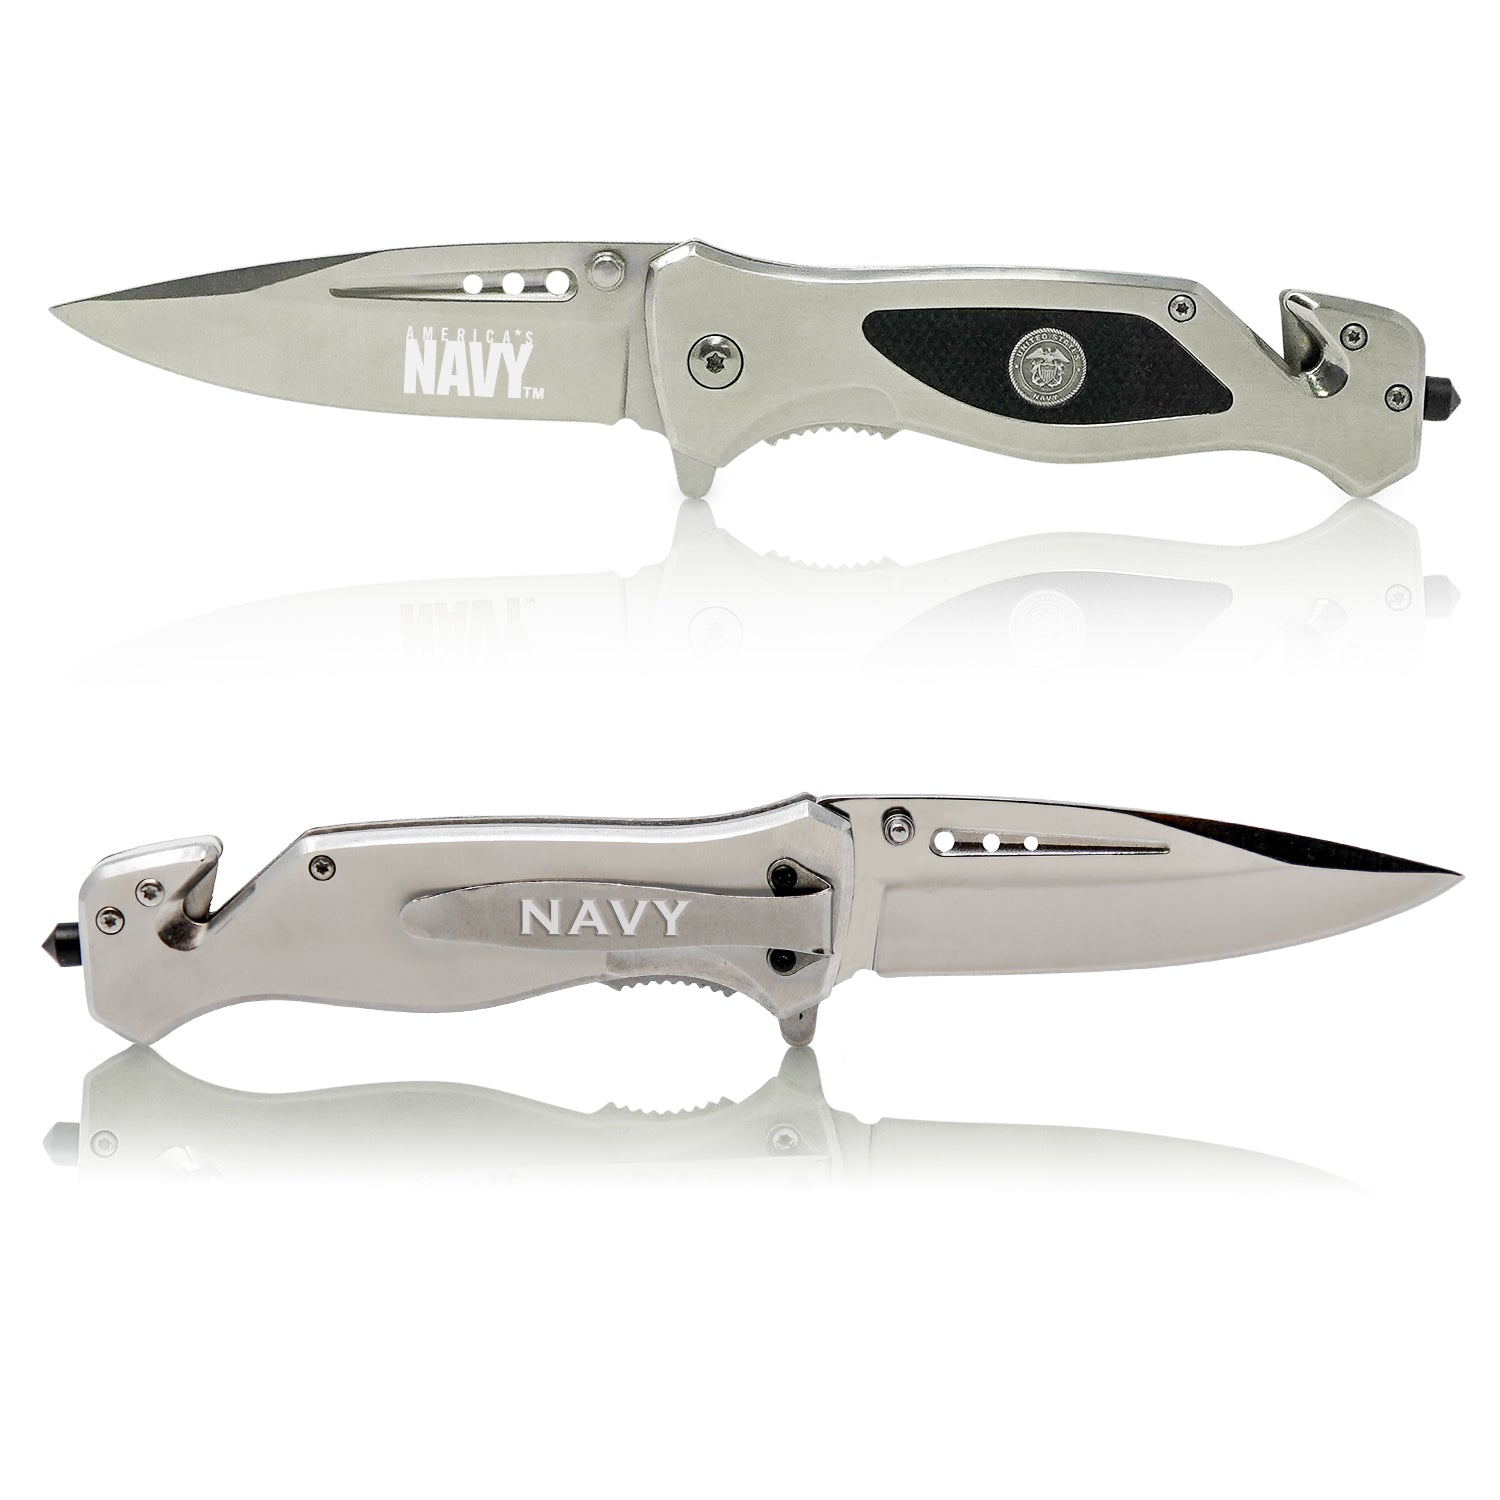 Navy Knife Front and Back